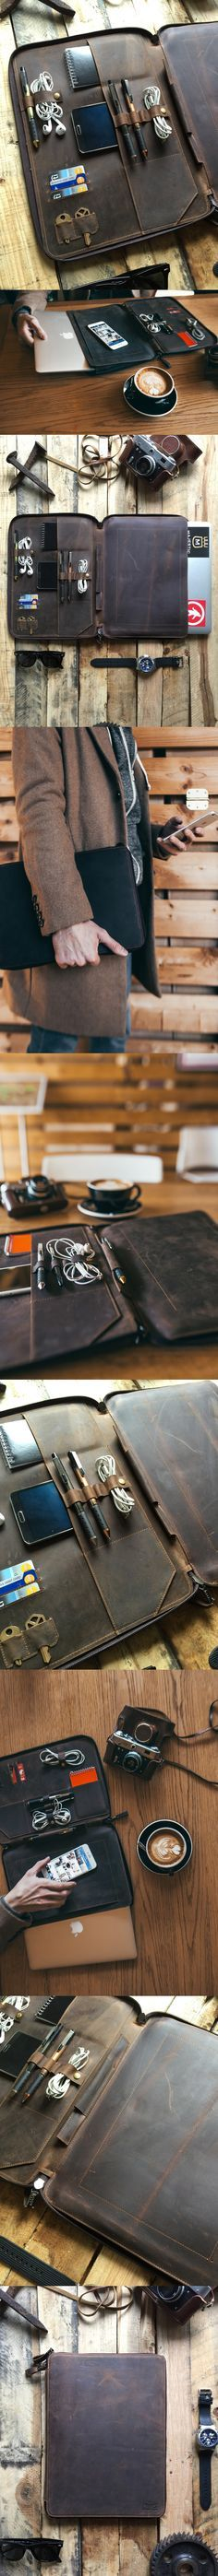 This full grain leather portfolio, leather organizer, leather folder was carefully designed to protect your Laptop, tablet, and all of your daily essentials. The beautiful distressed leather gives a unique and rustic look while keeping your essentials organized.